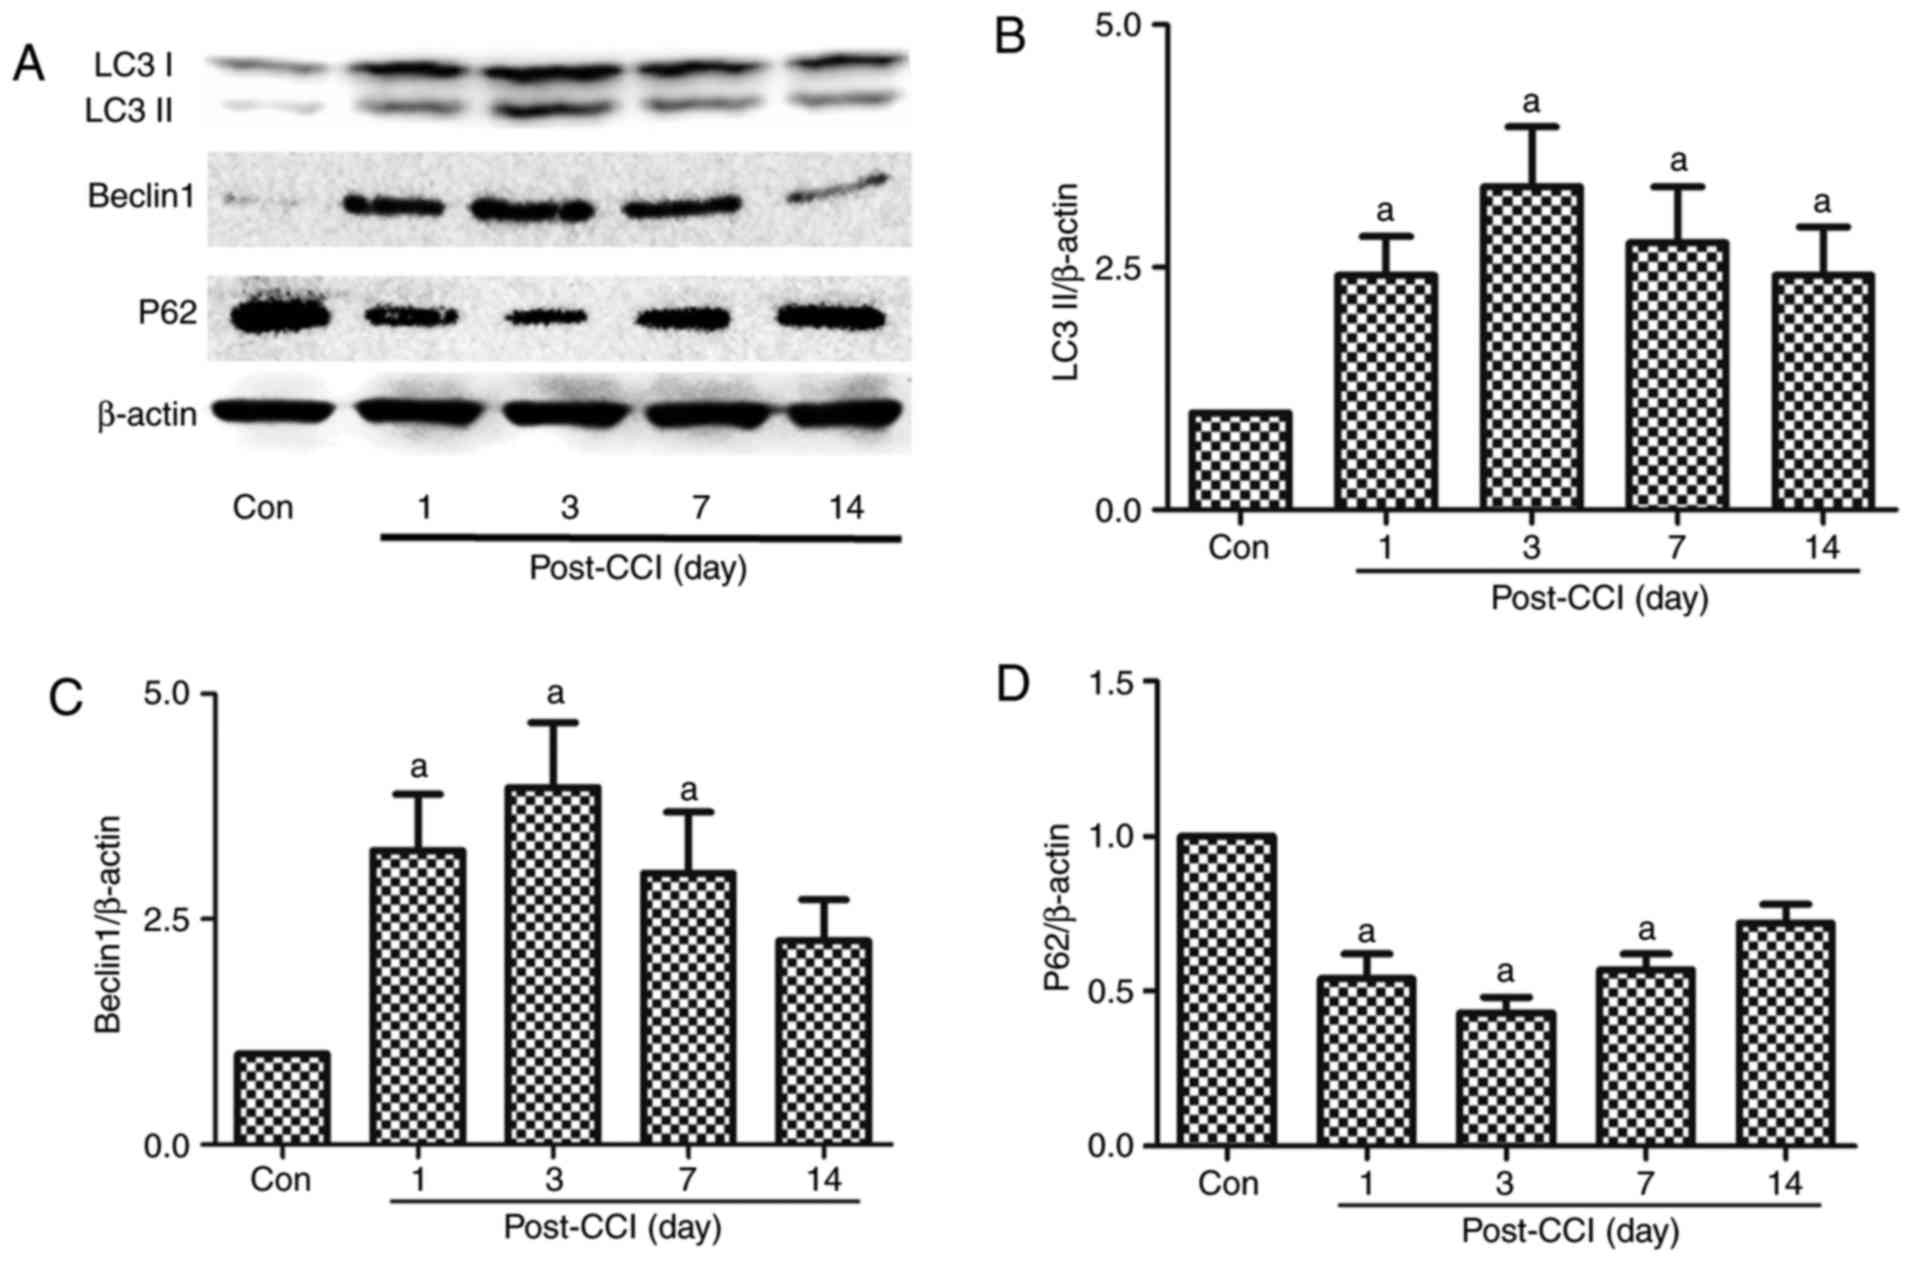 Effect Of Autophagy On Allodynia Hyperalgesia And Astrocyte Cambridge 302 Wiring Diagram Figure 1 Expression The Related Proteins Lc3ii Beclin P62 In Spinal Dorsal Horn Rats With Neuropathic Pain